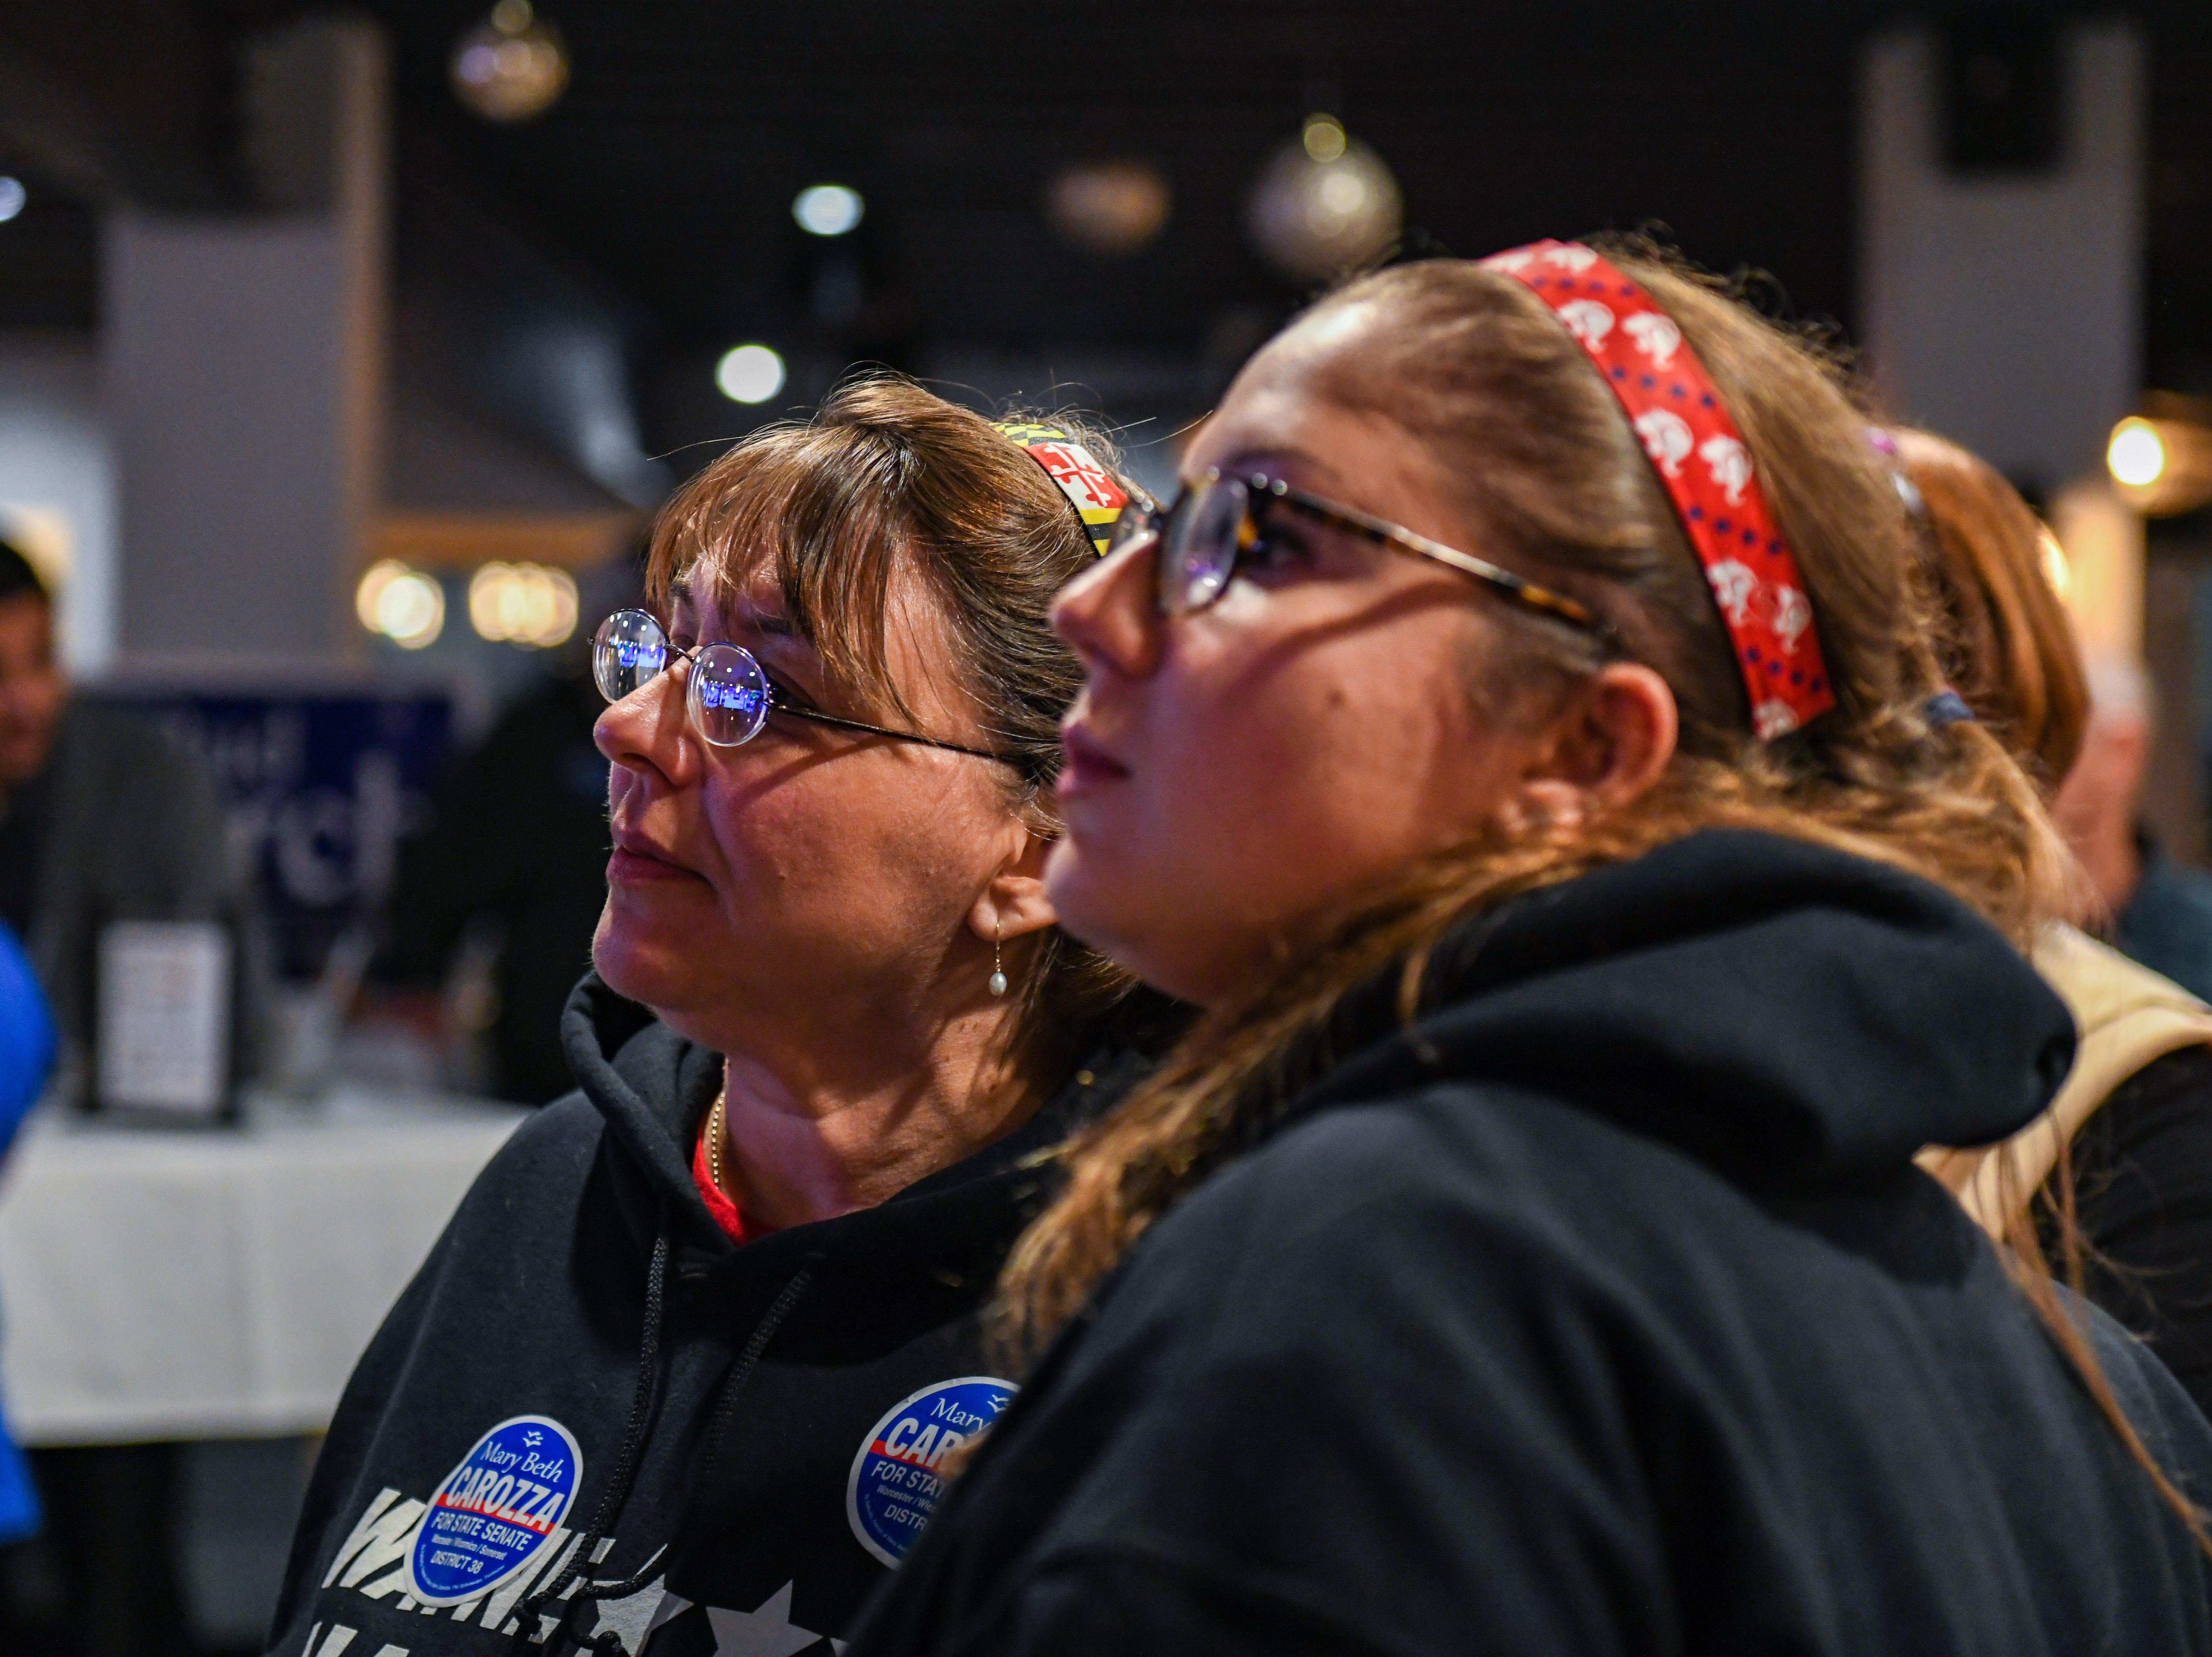 Alyson and Sharon Hartman watch results at the Mary Beth Carozza watch party in Ocean City on Tuesday, Nov 6, 2018.